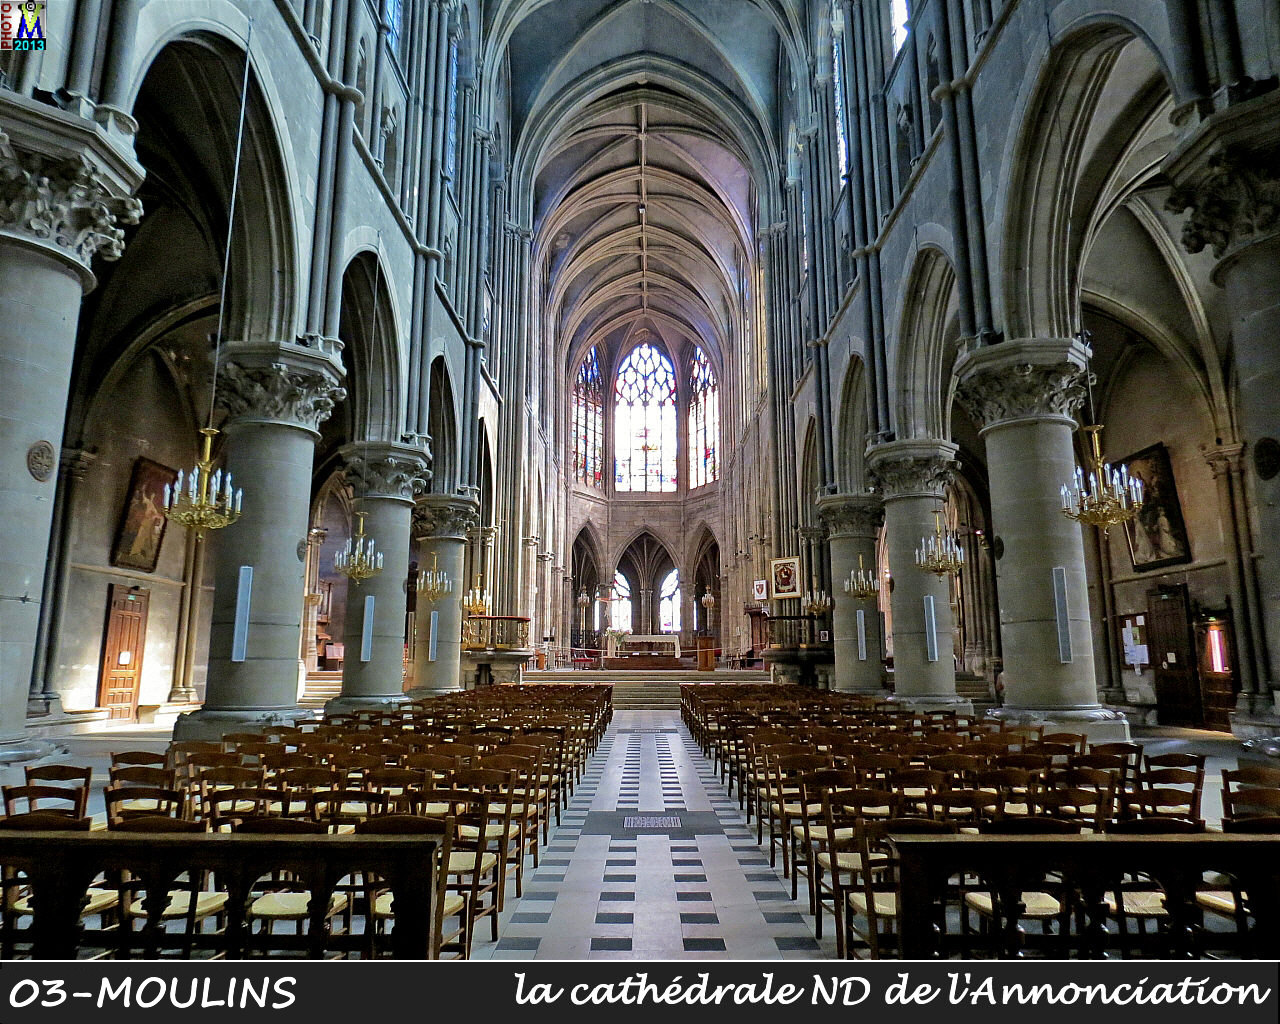 03MOULINS_cathedrale_200.jpg